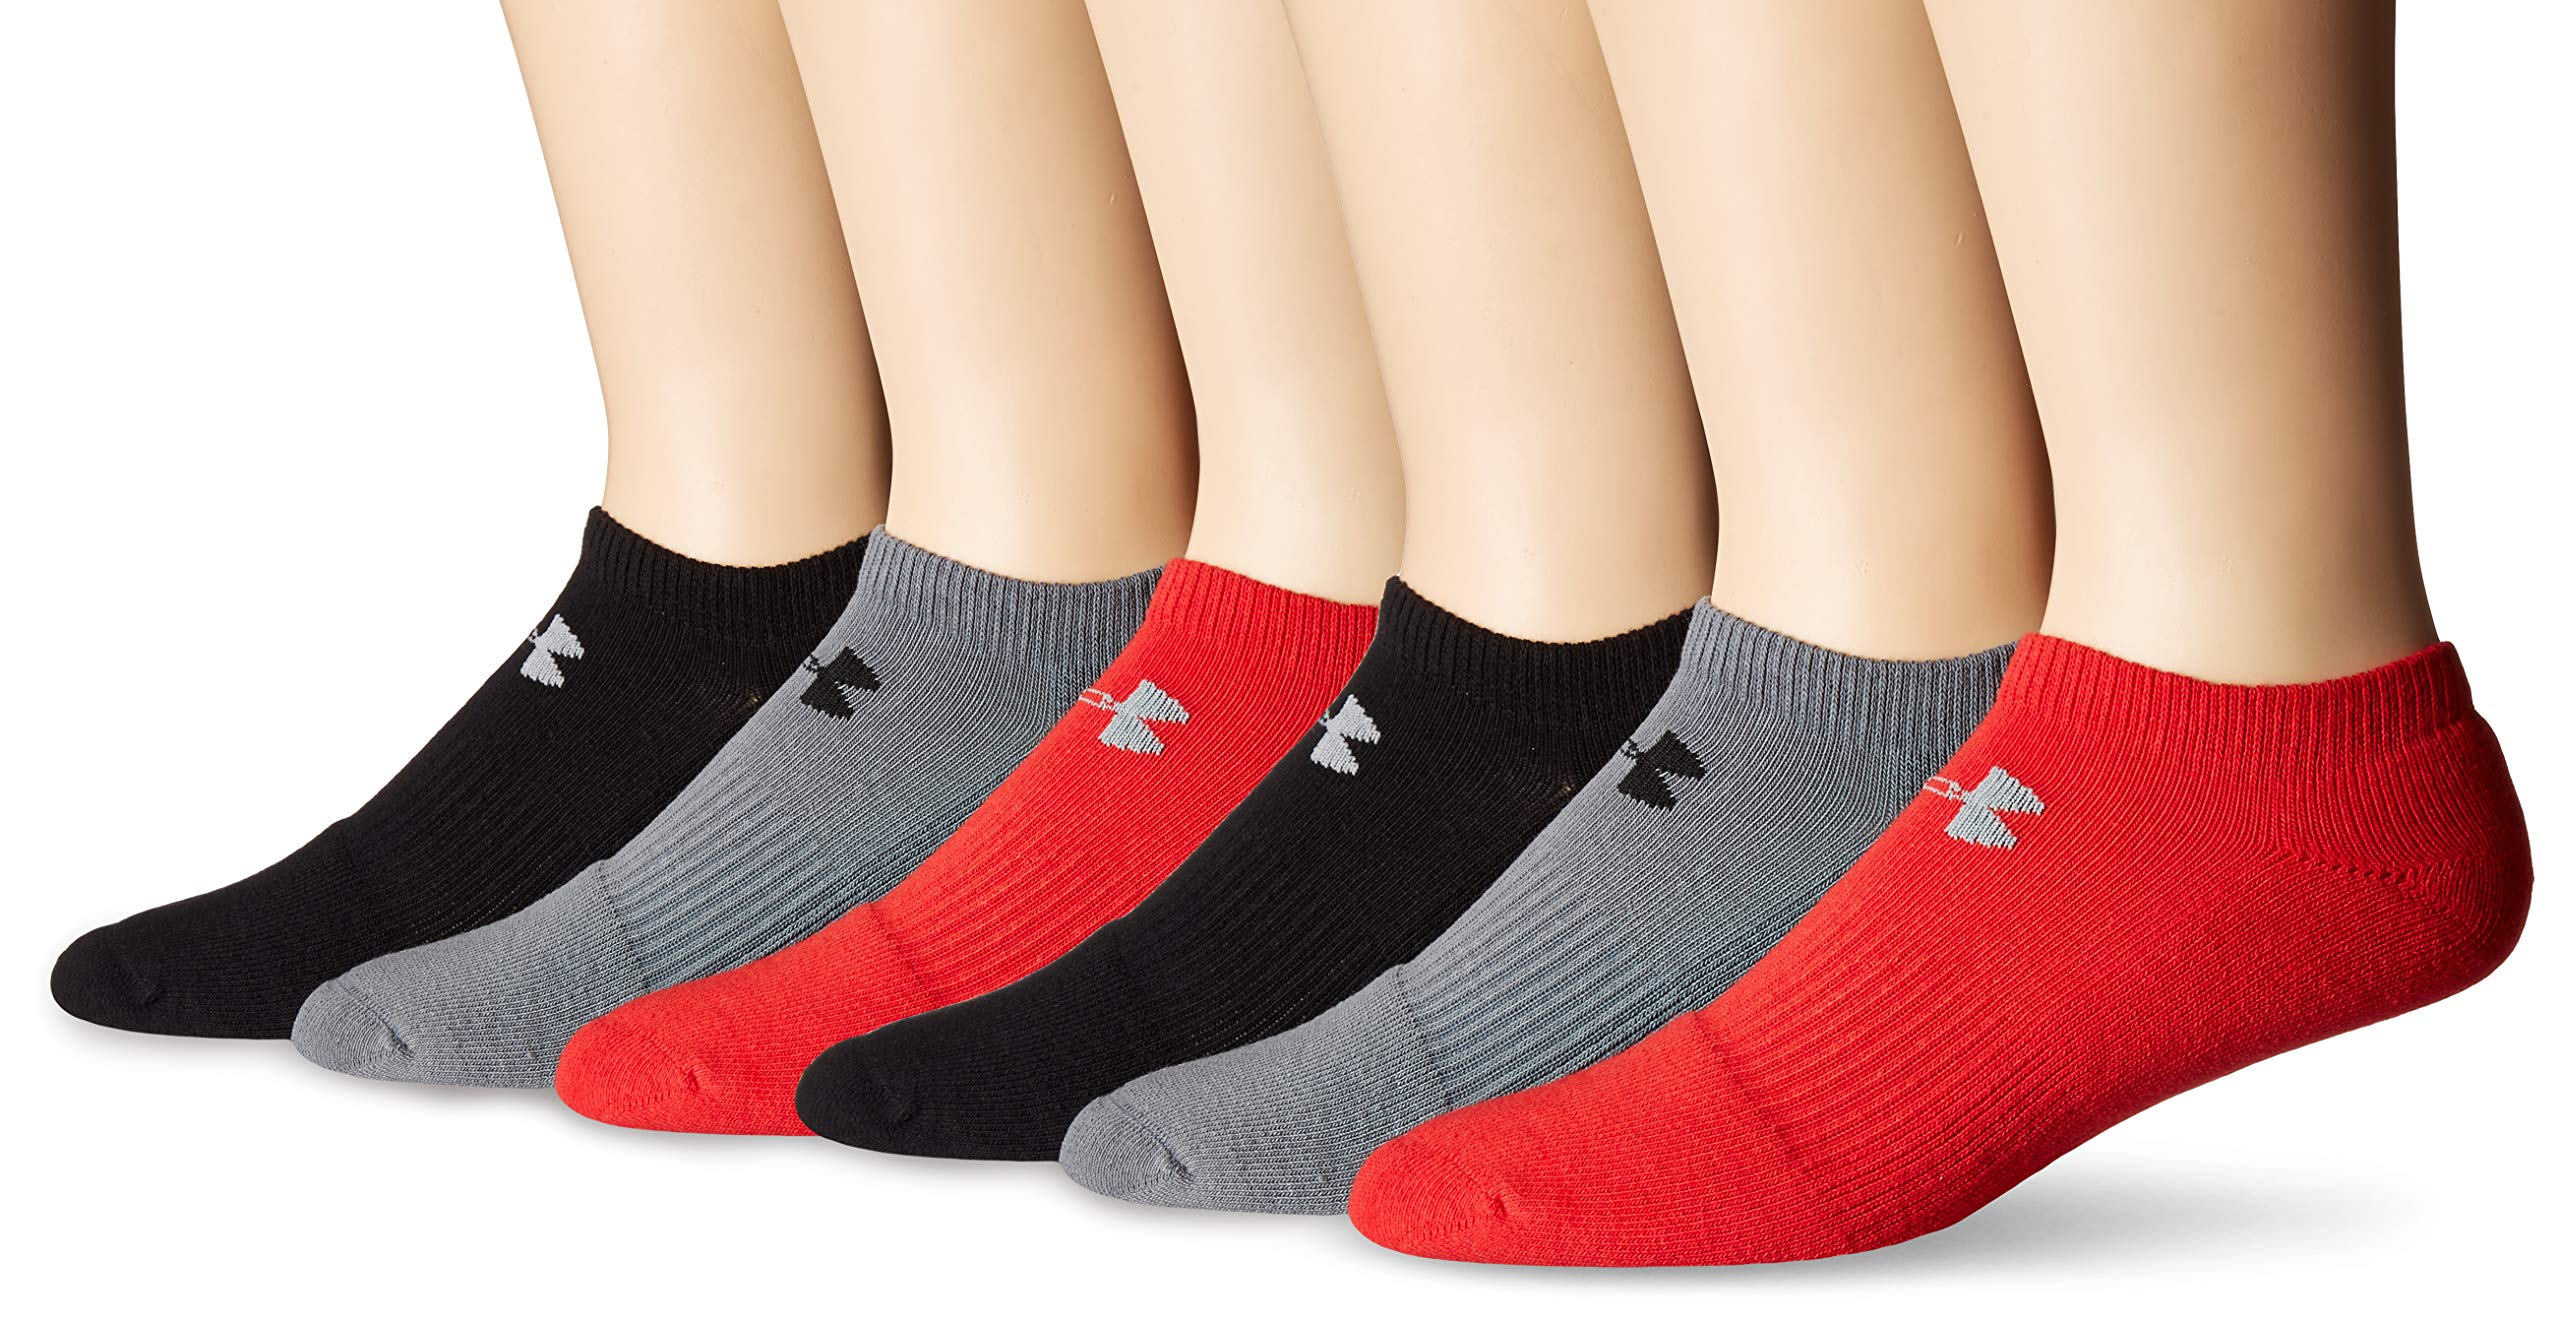 Under Armour Charged Cotton 2.0 No Show Socks, 6-Pair, Red Assorted, Shoe Size: 8-12